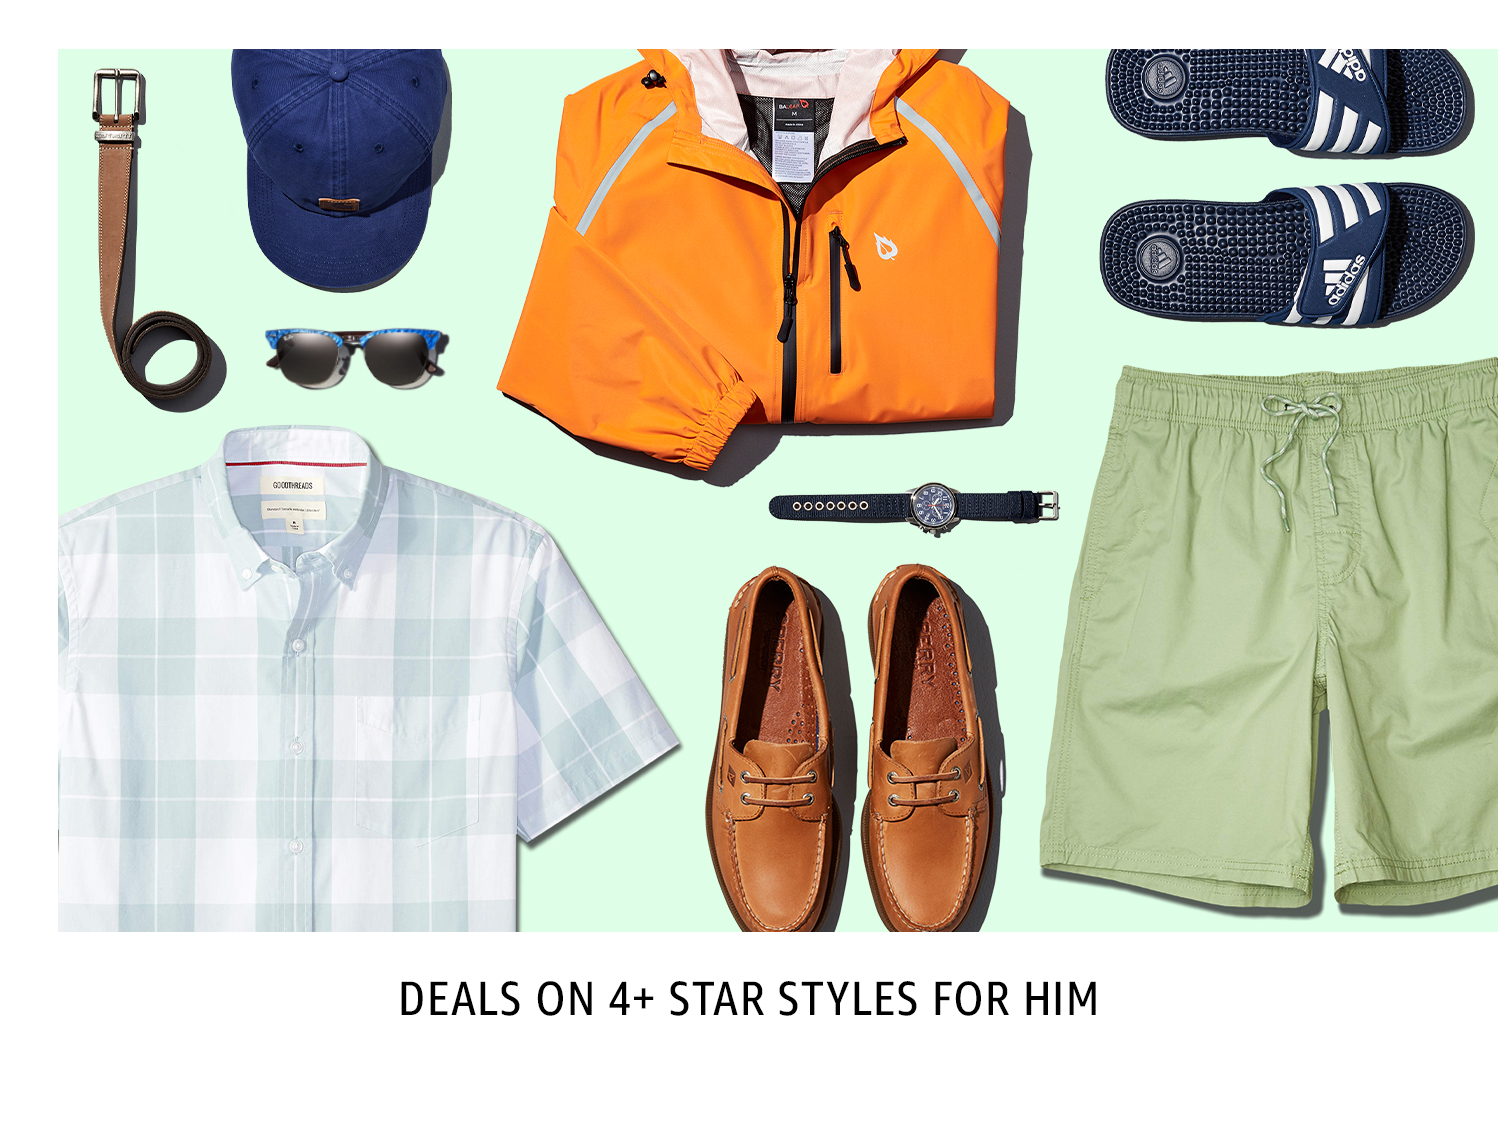 Deals on 4+ Star Style for Him